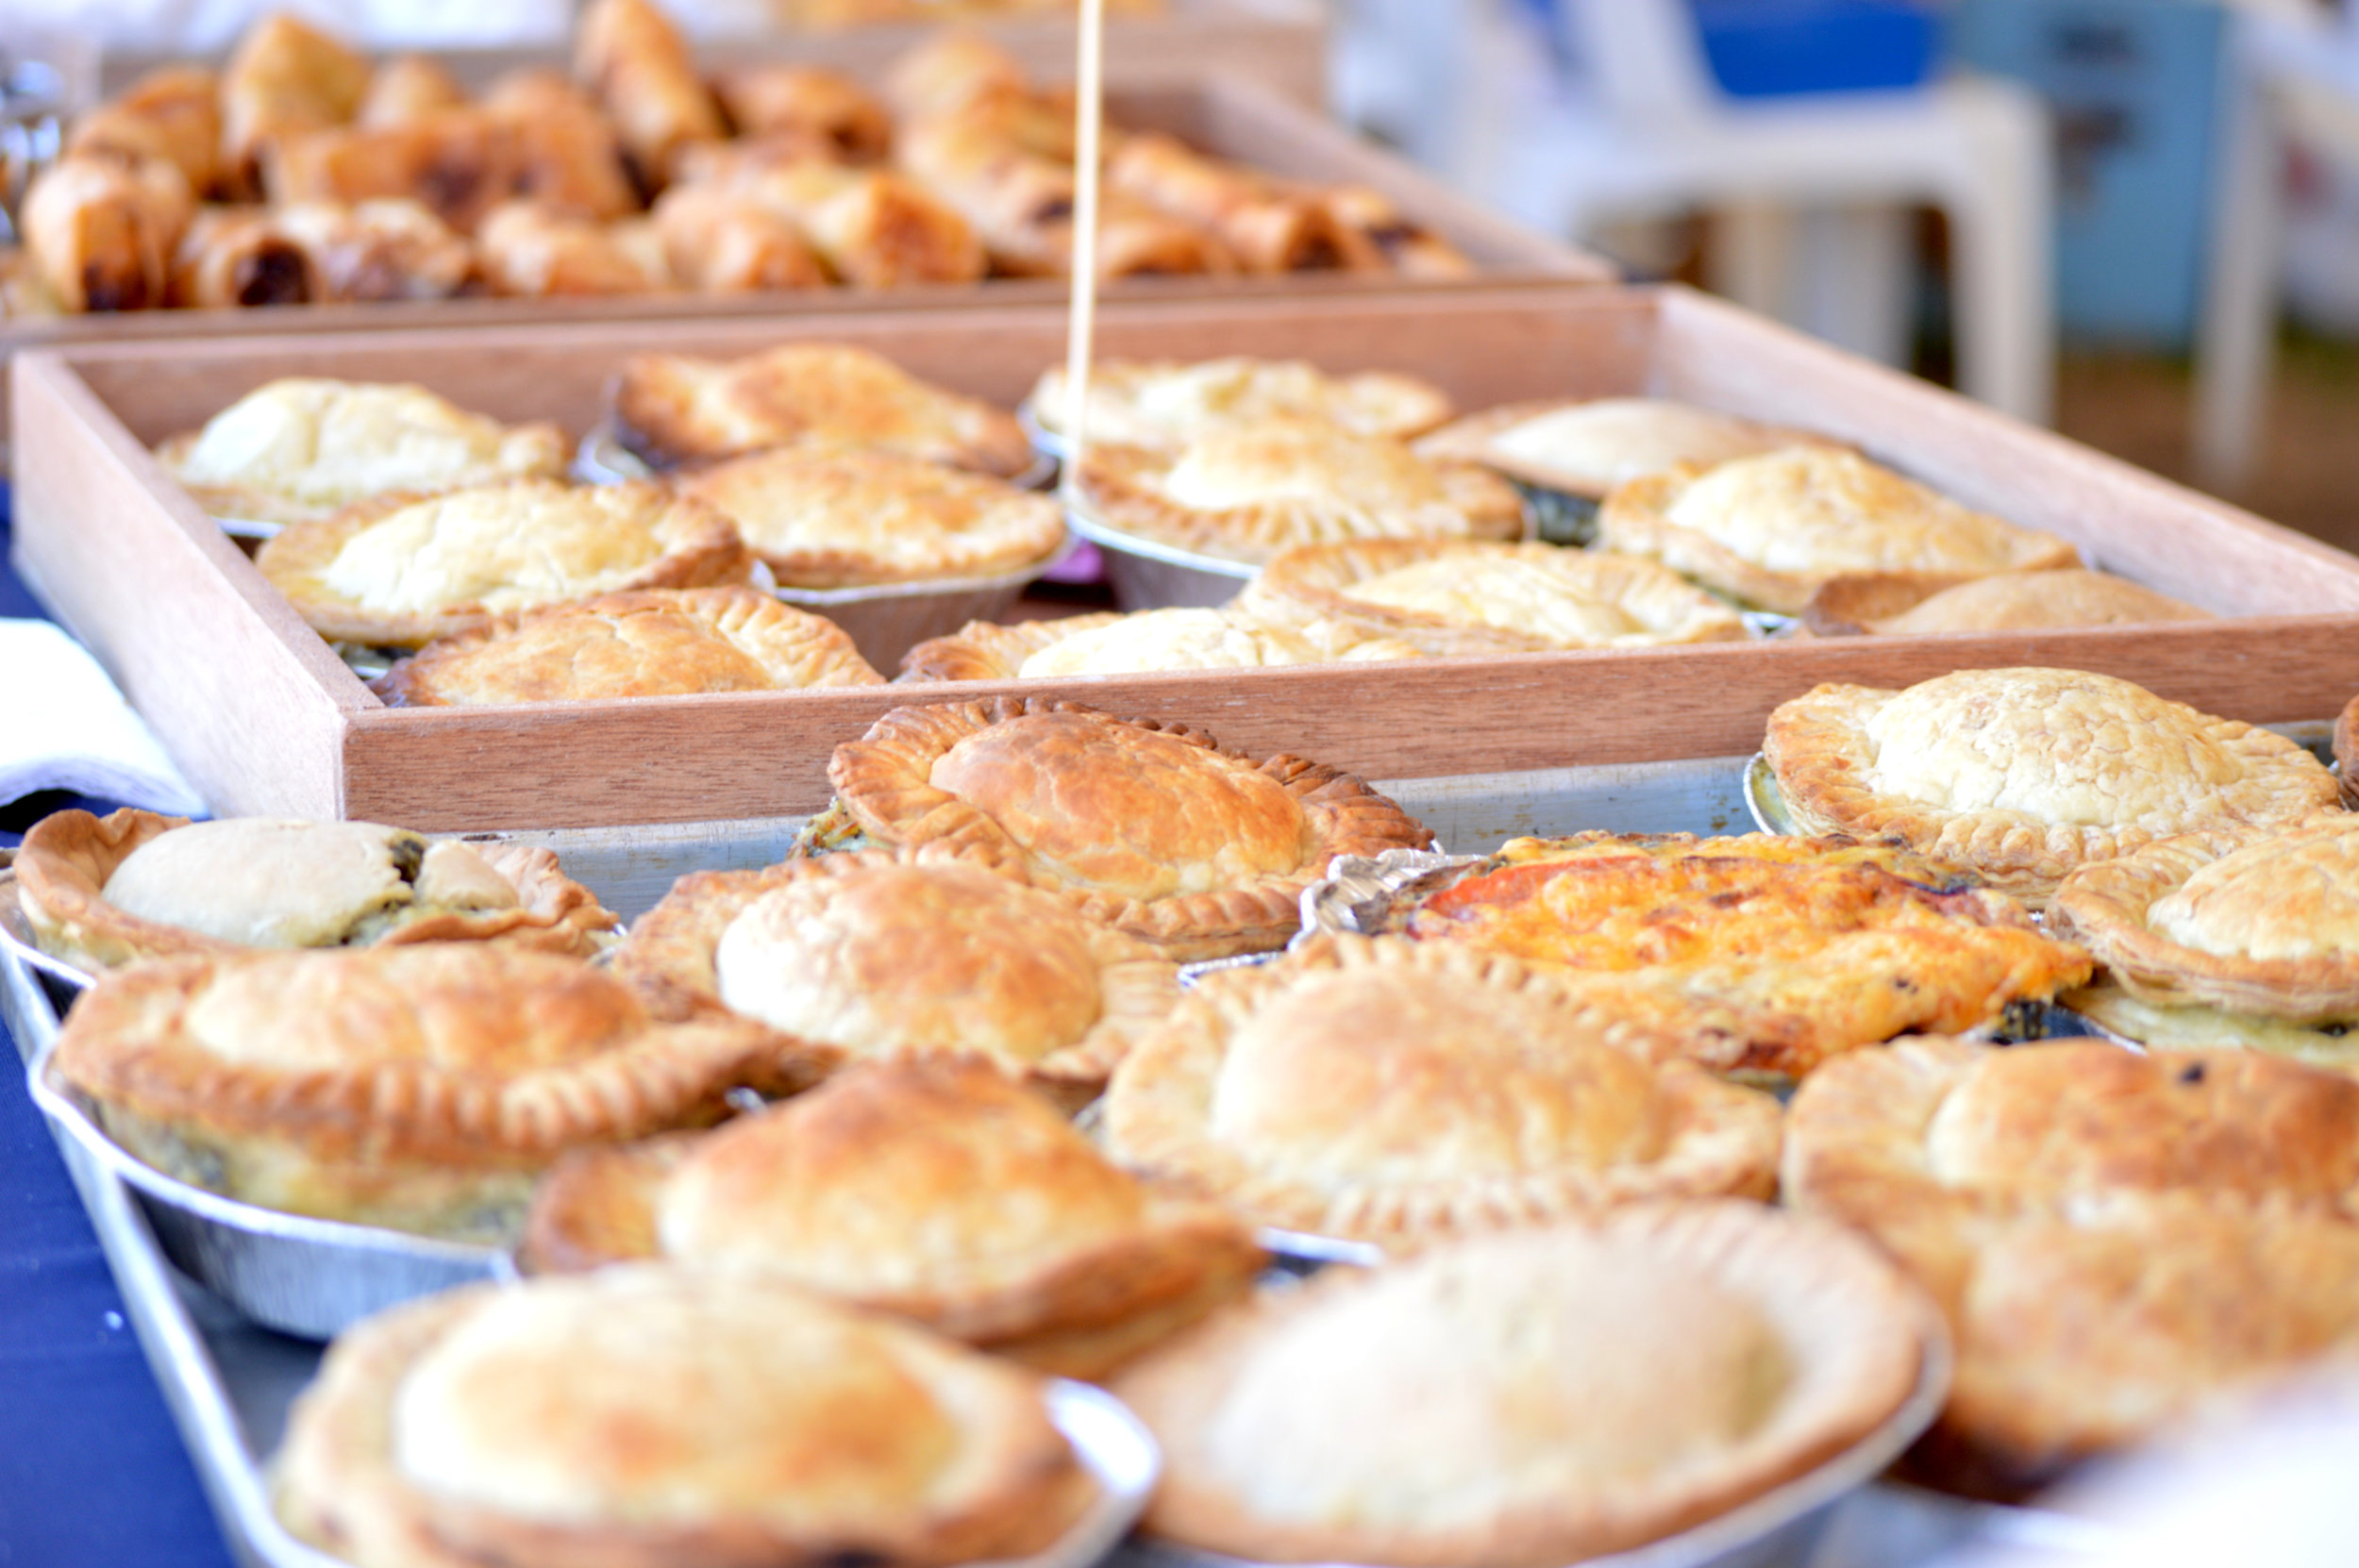 Athens is a paradise for all bread and pie lovers with bakeries offering local delicacies on almost every corner!